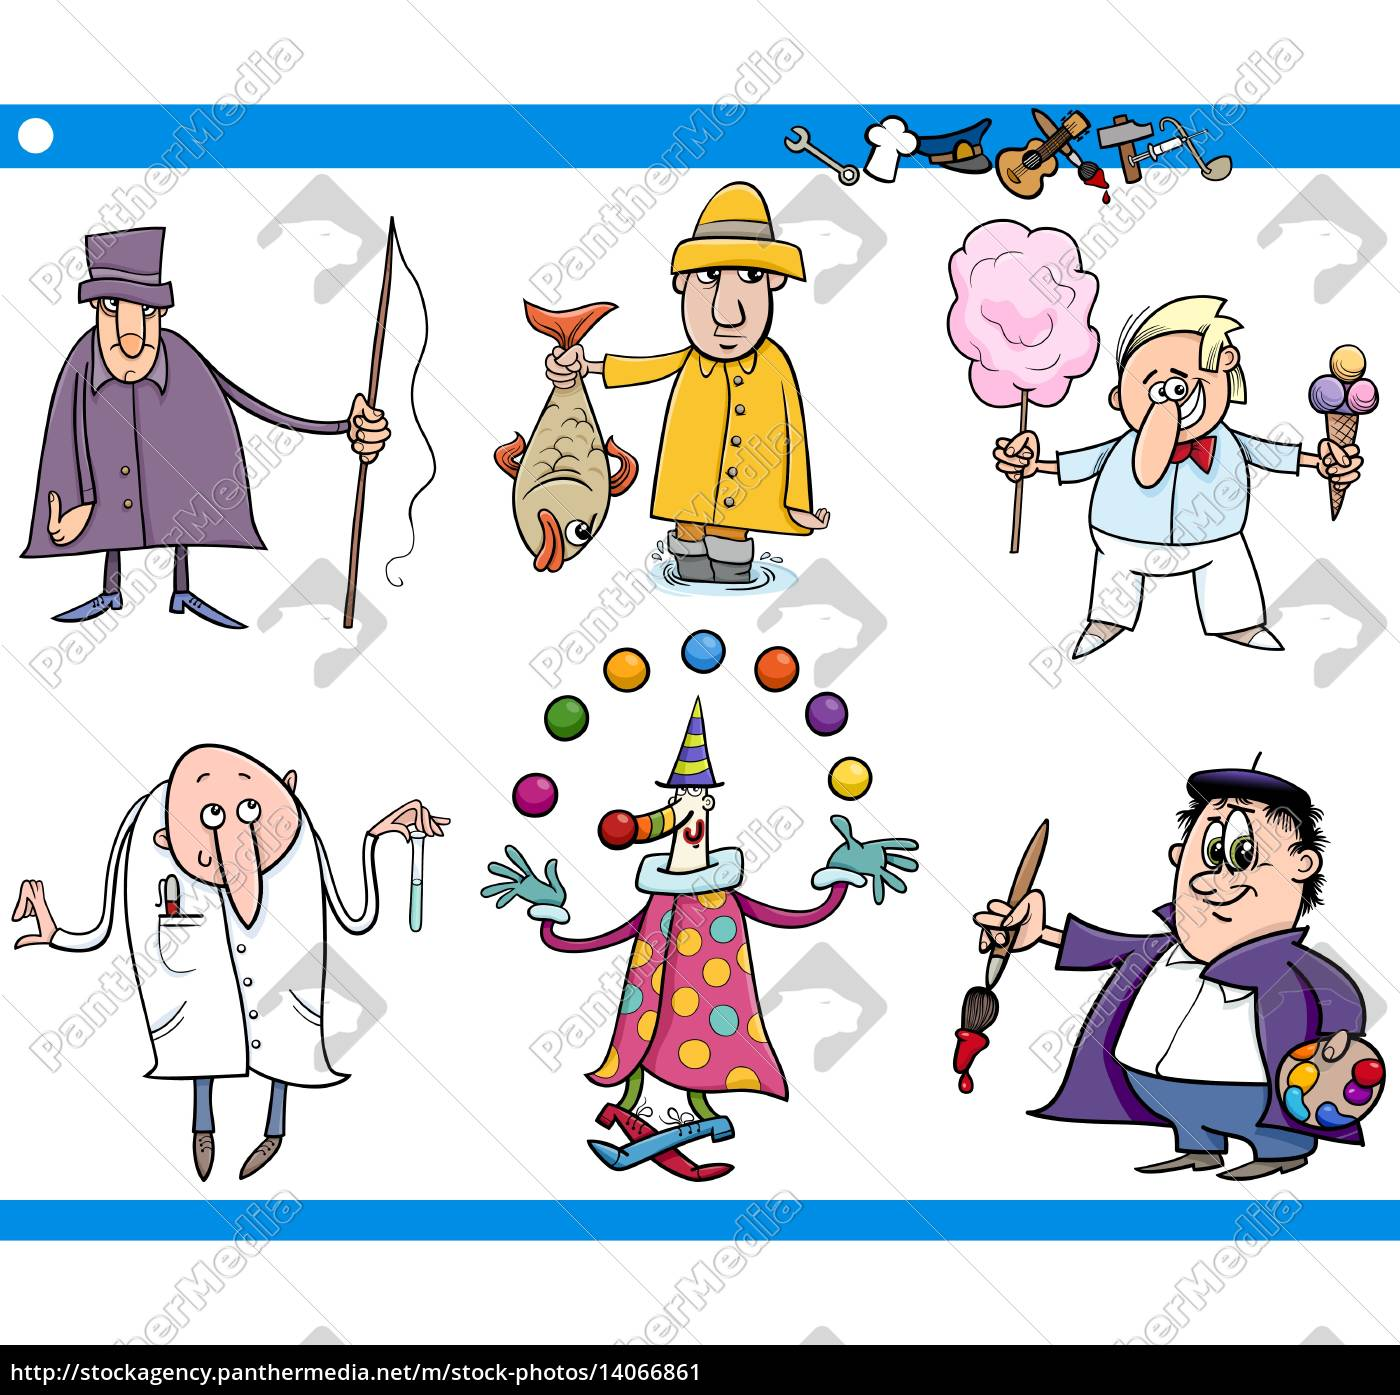 cartoon, people, occupations, characters, set - 14066861